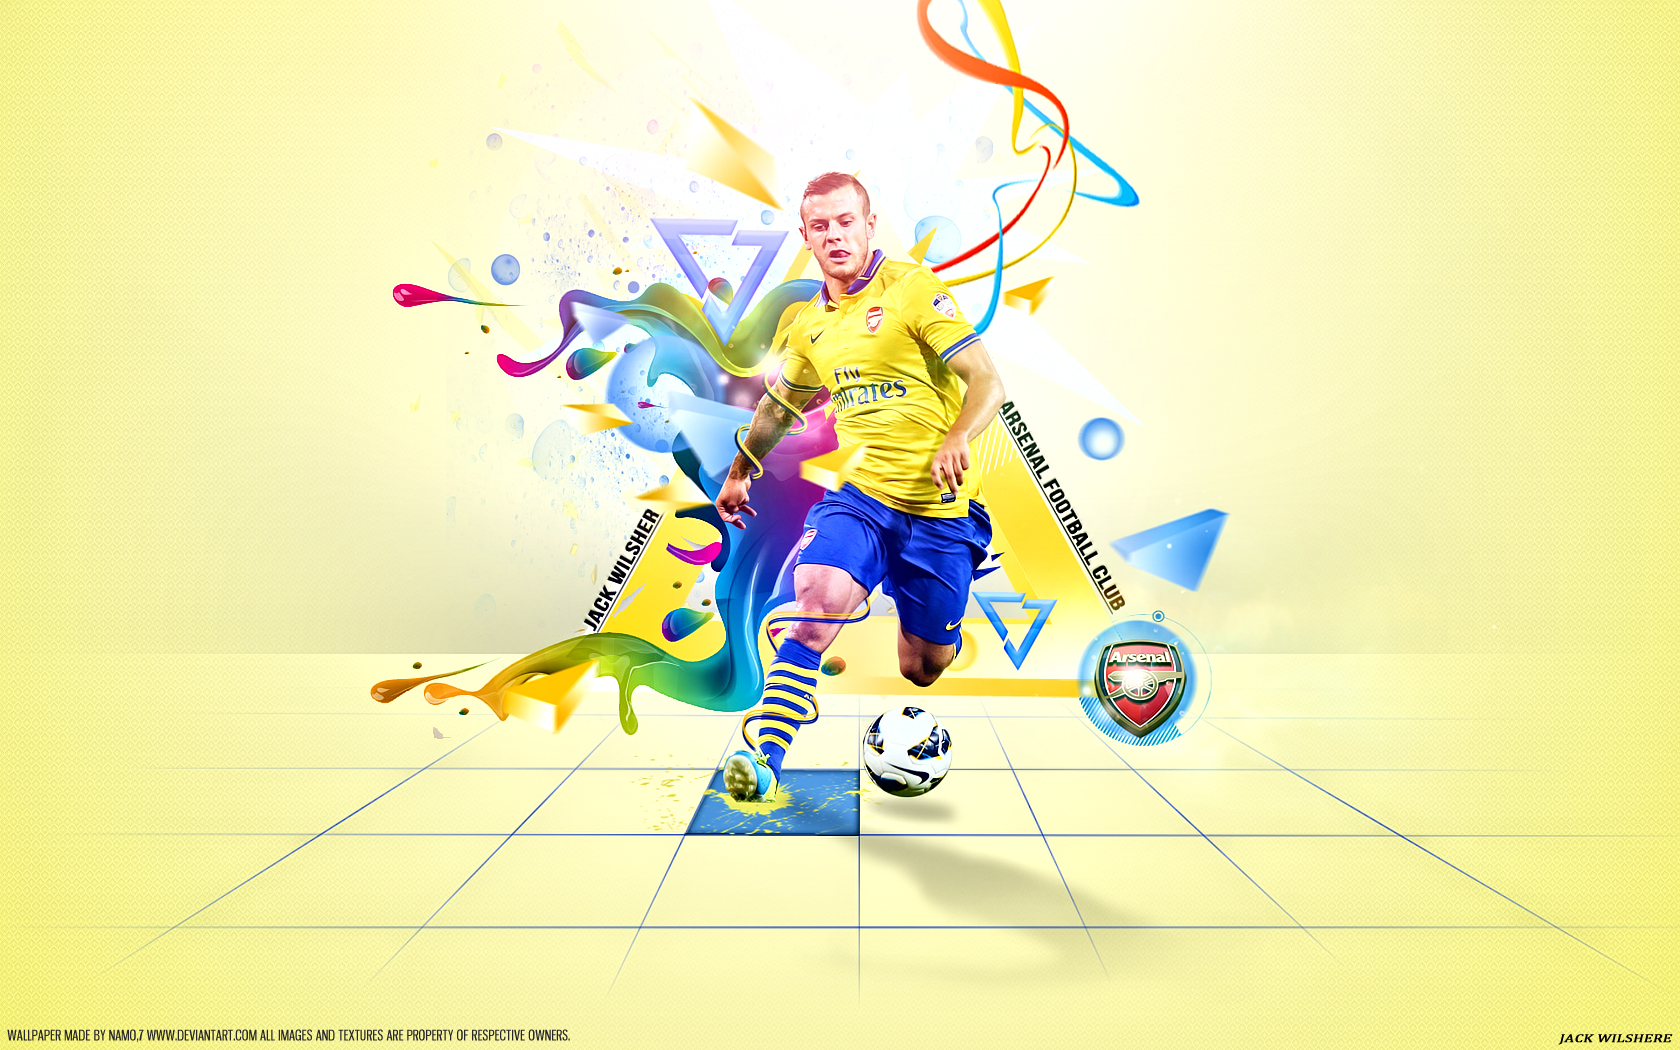 Jack Wilshere 10 ARSENAL By Namo,7 By 445578gfx On DeviantArt